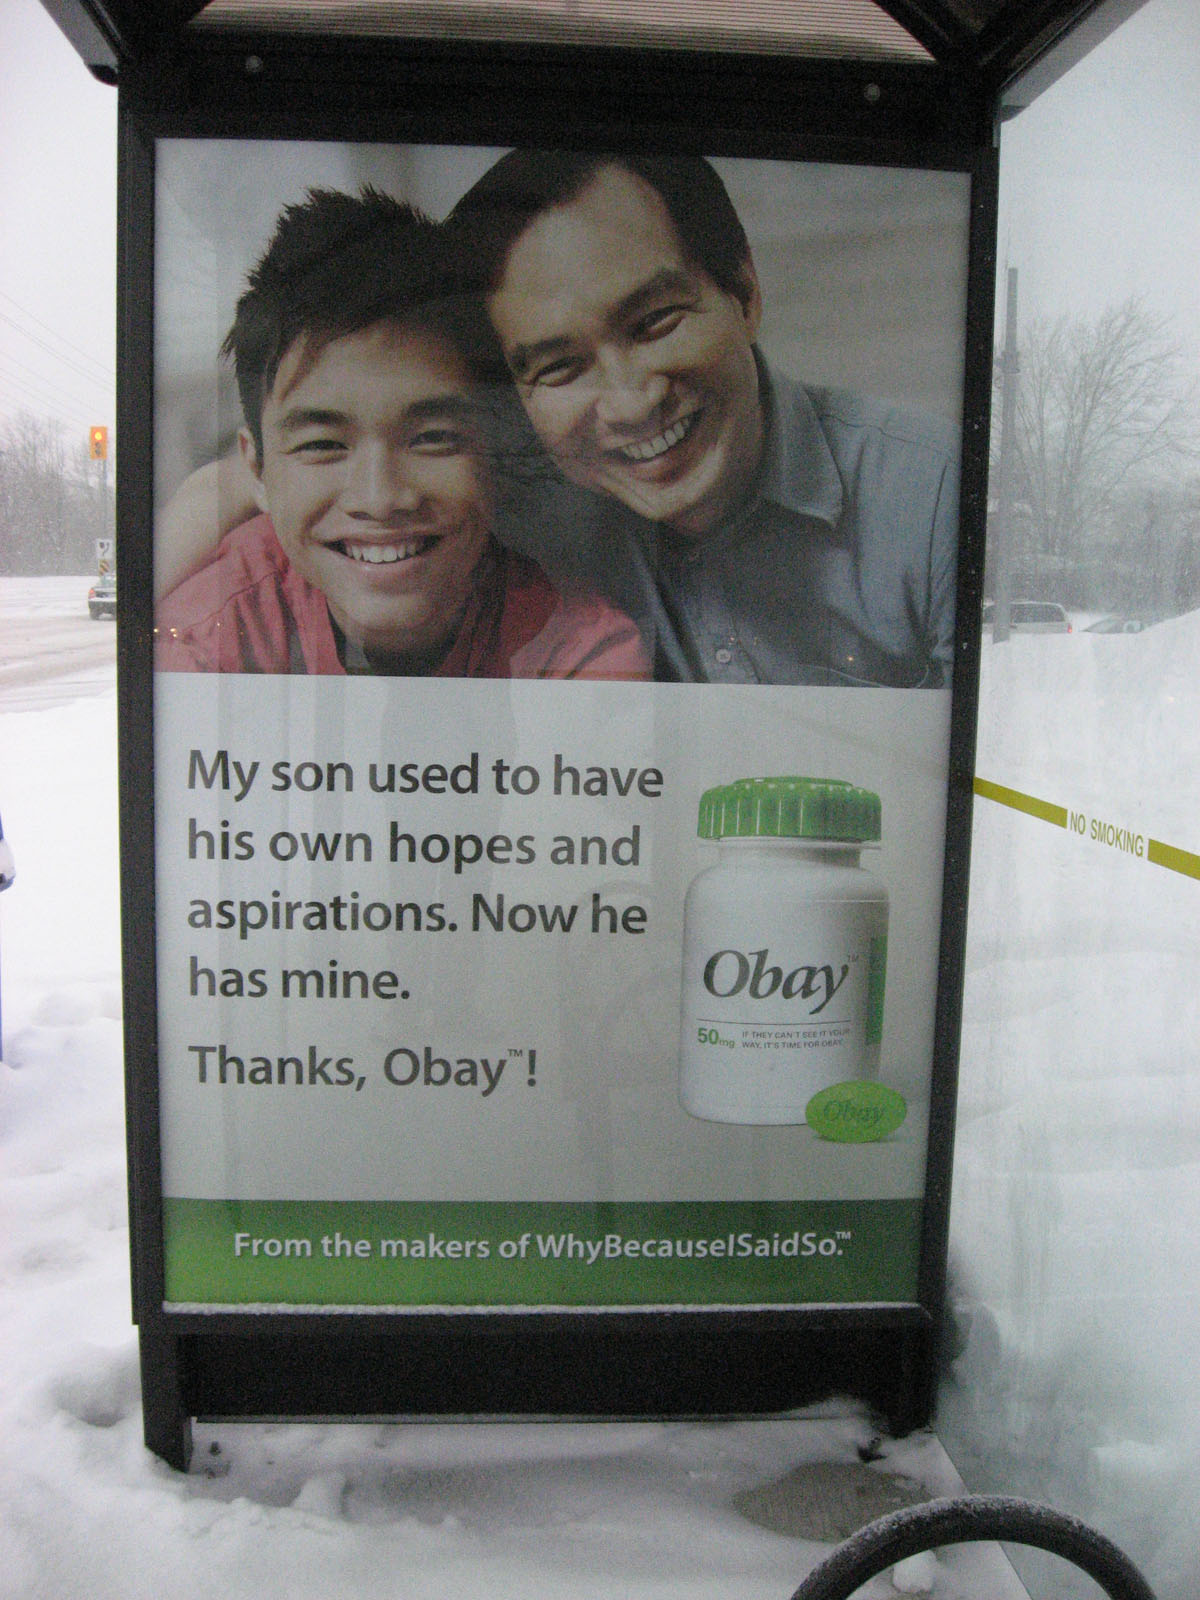 Obay Pills Sign in Canada from Jakub